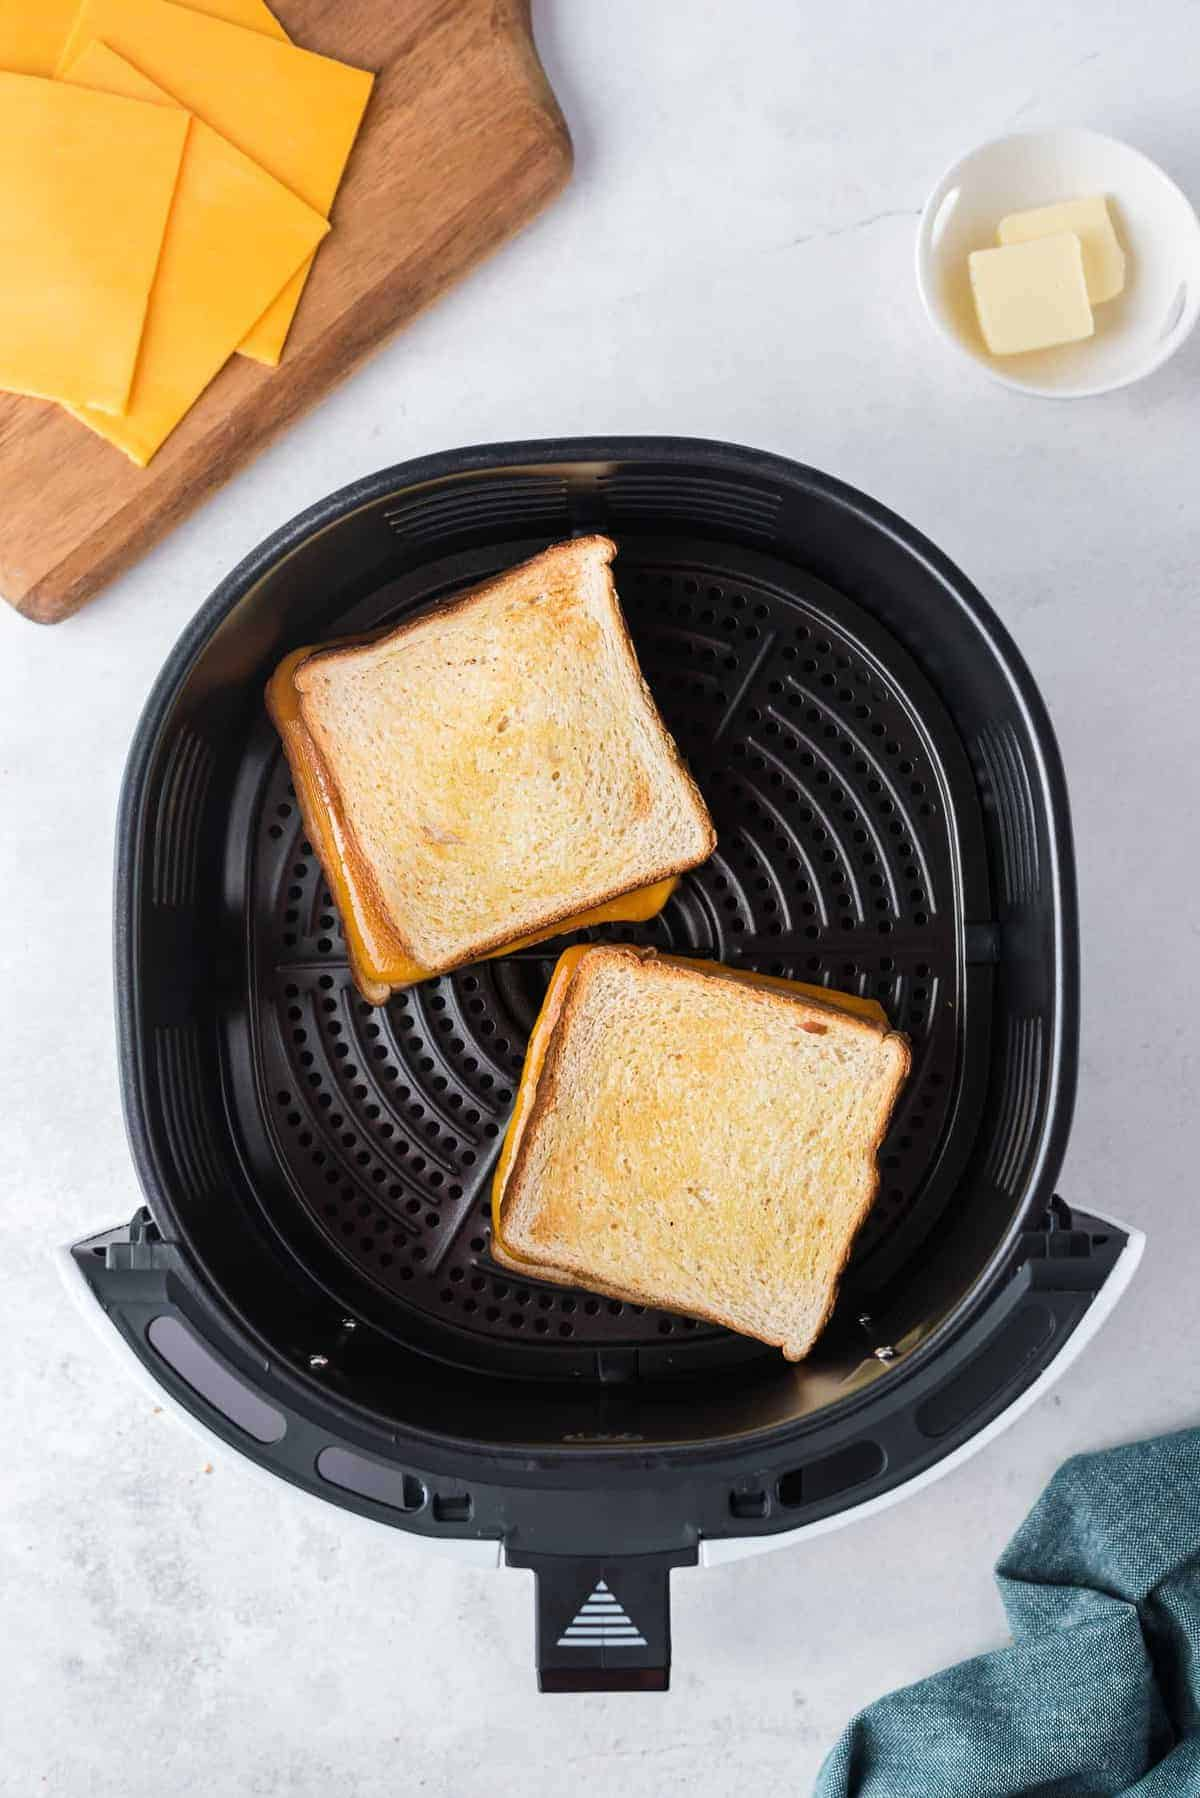 Grilled cheese being made in an air fryer.